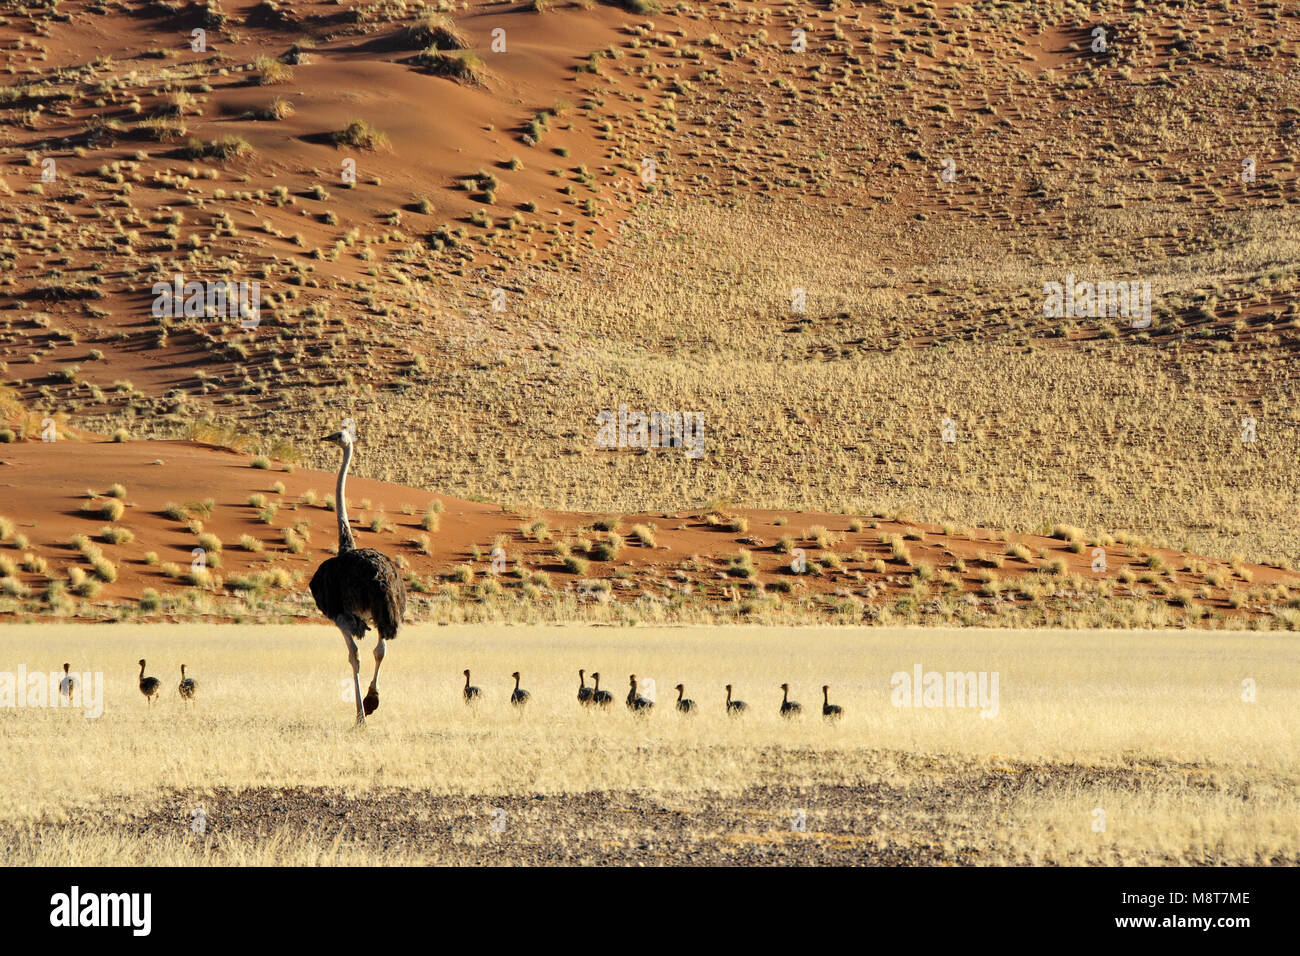 Ostrich with chicks - Stock Image